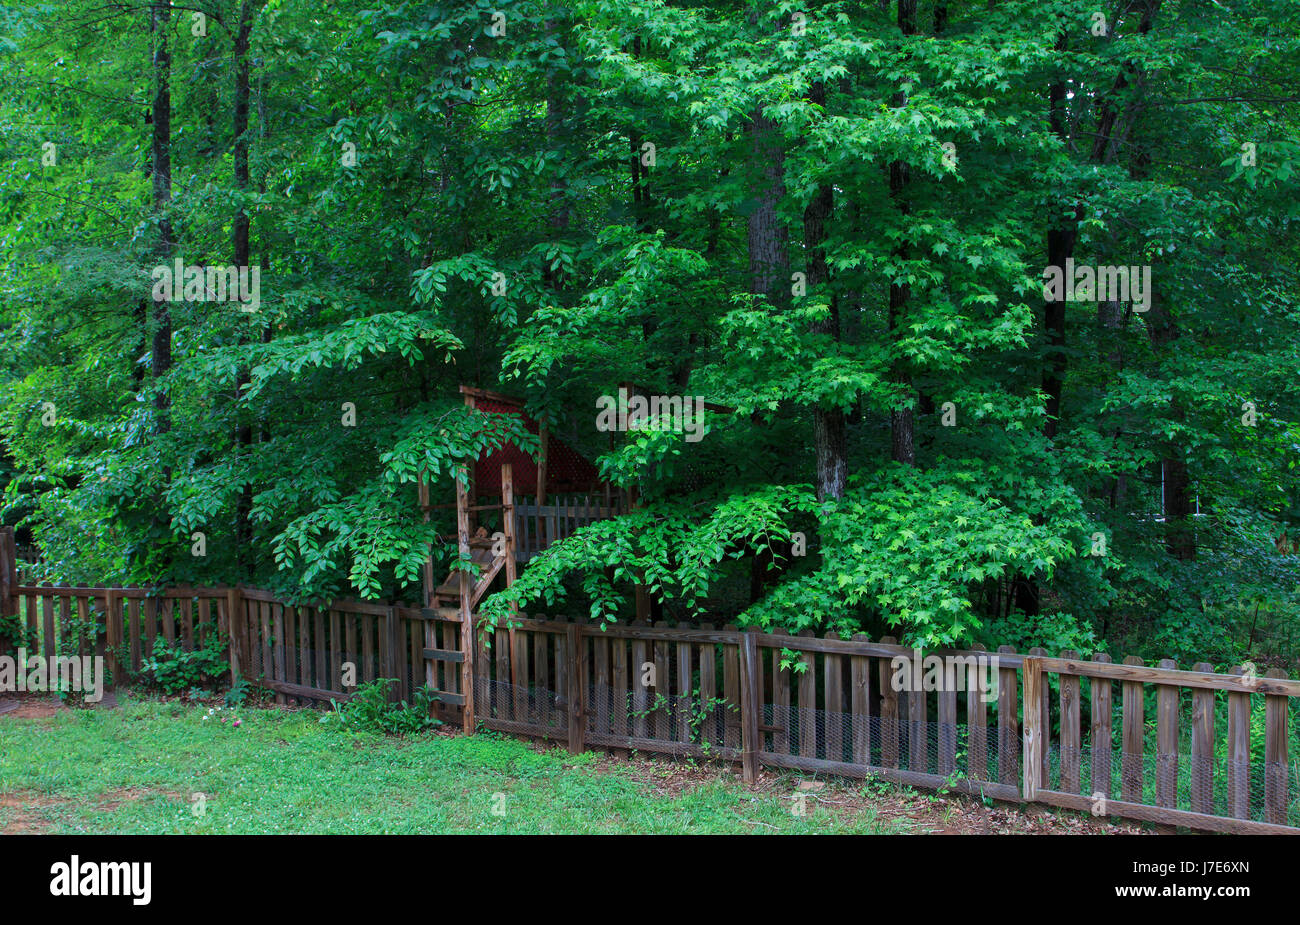 Backyard hidden tree house and picket fence in green trees - Stock Image